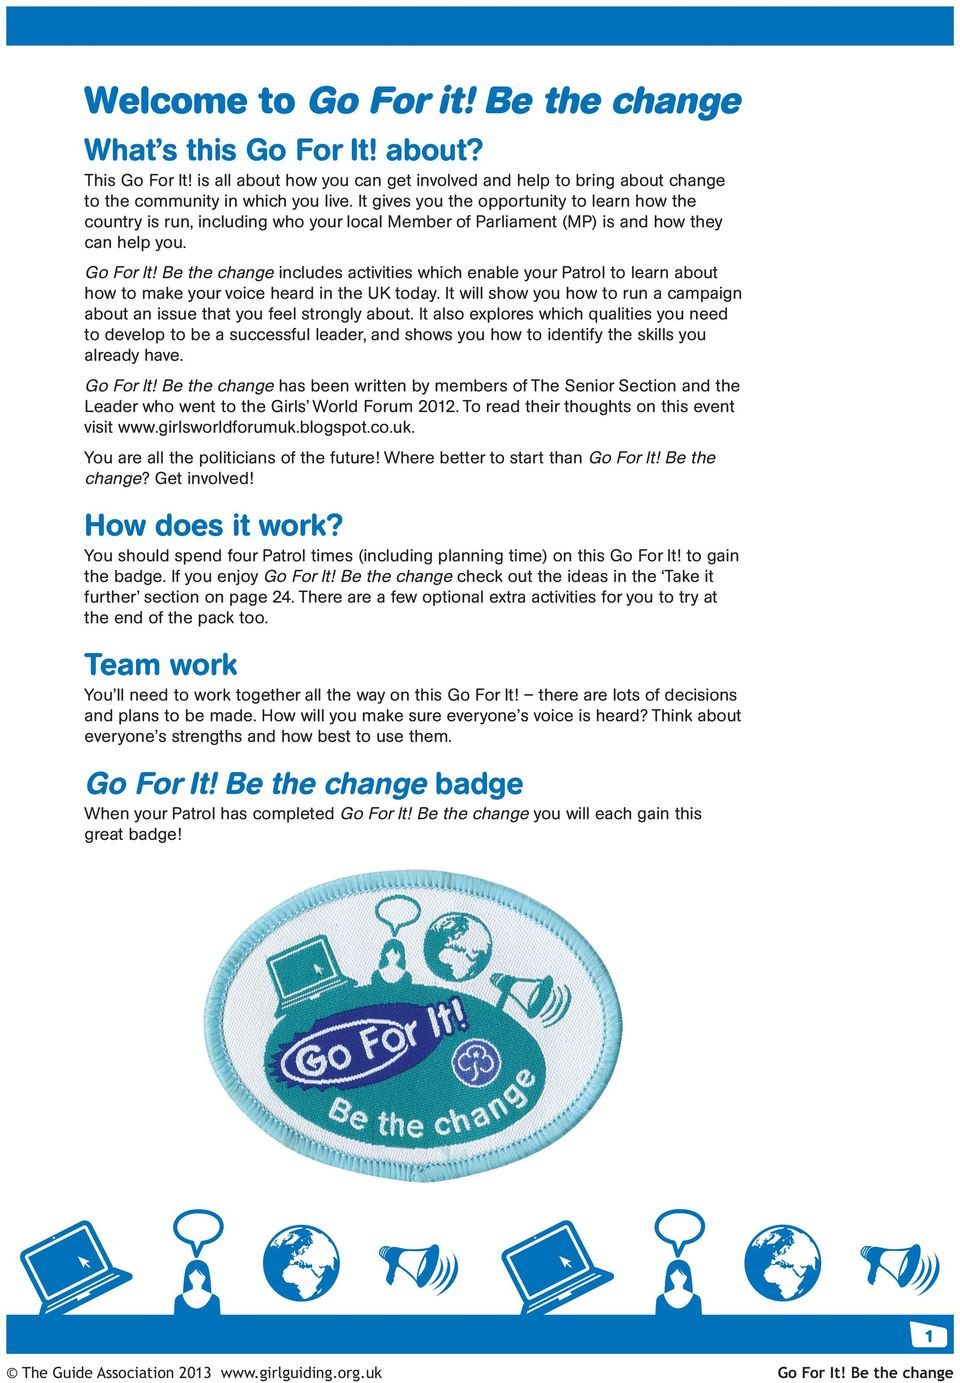 Be the change includes activities which enable your Patrol to learn about how to make your voice heard in the UK today.